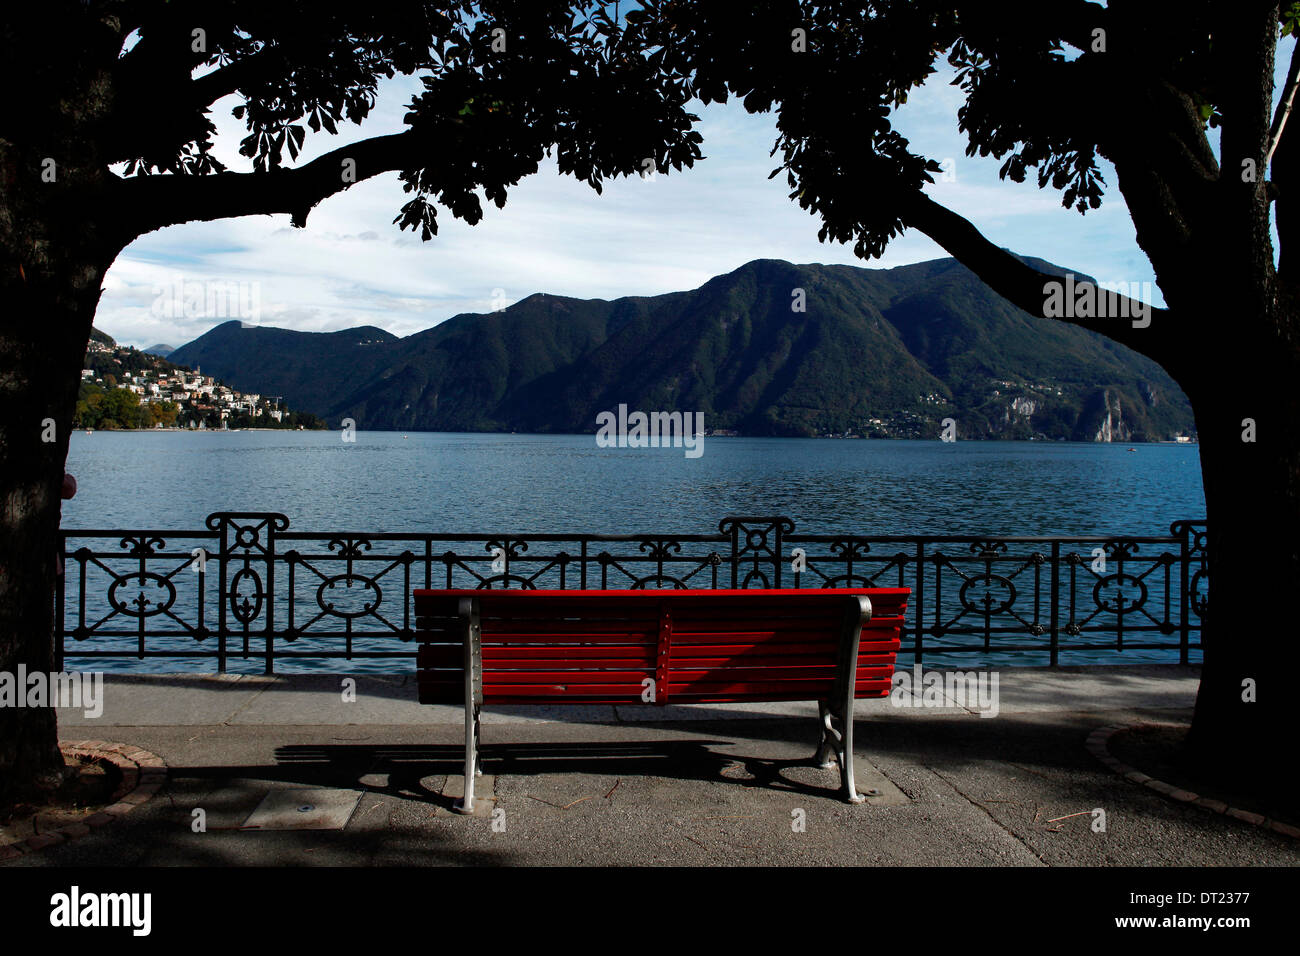 A red bench between two trees in front of Lugano lake - Stock Image